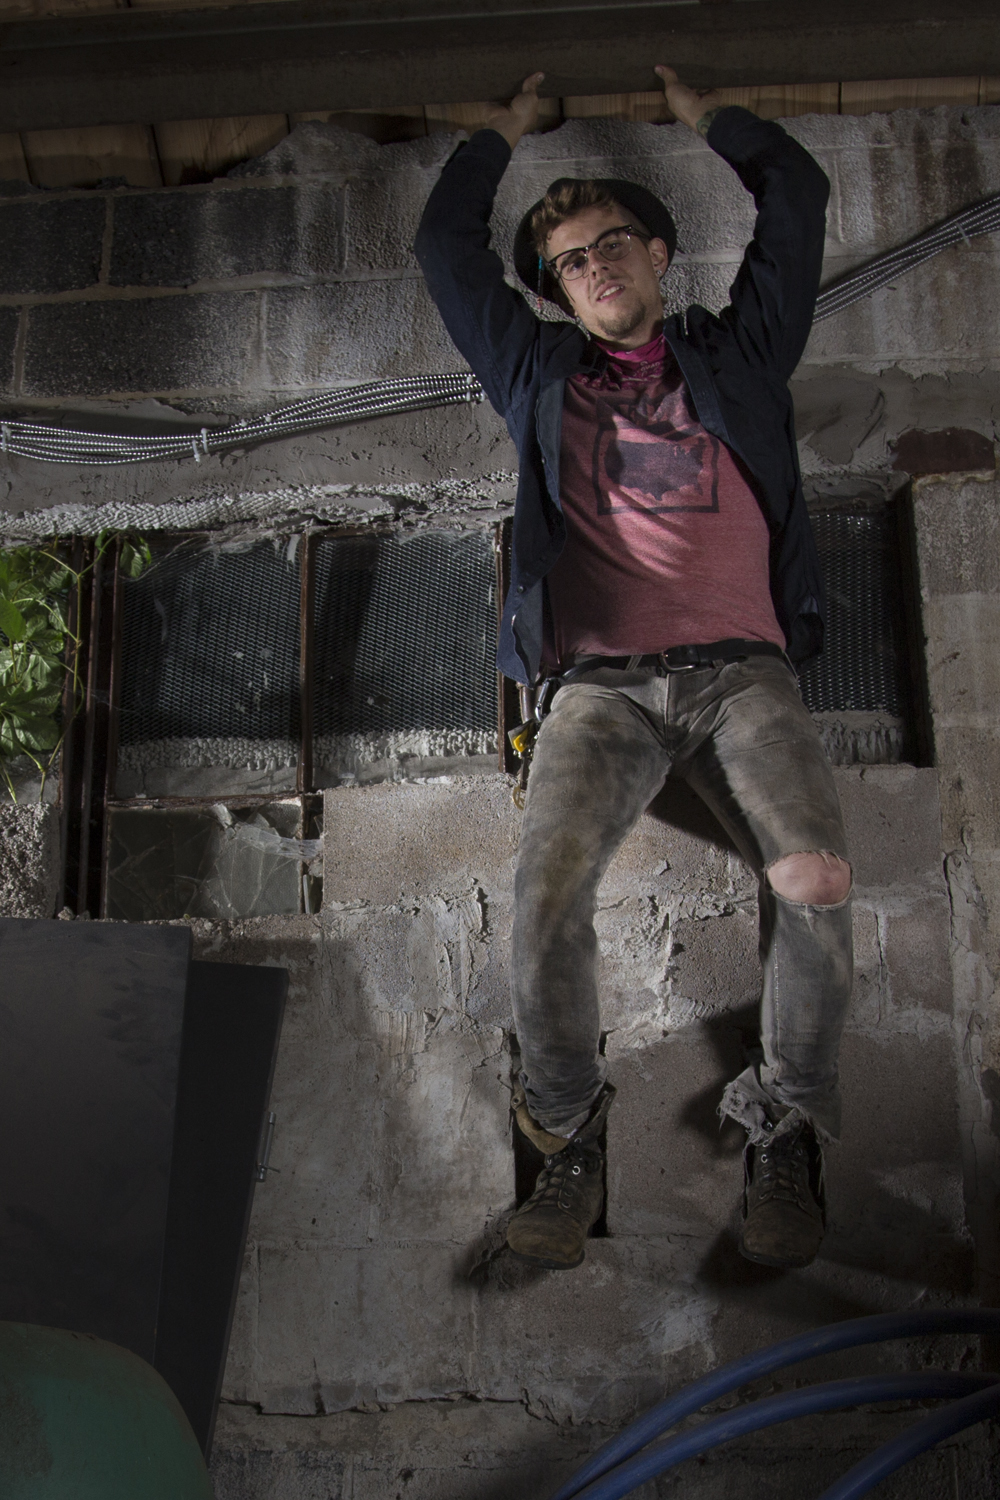 Josiah Krause, Seedfolk City Farm, poses for a portrait in an old warehouse, Rochester, N.Y.